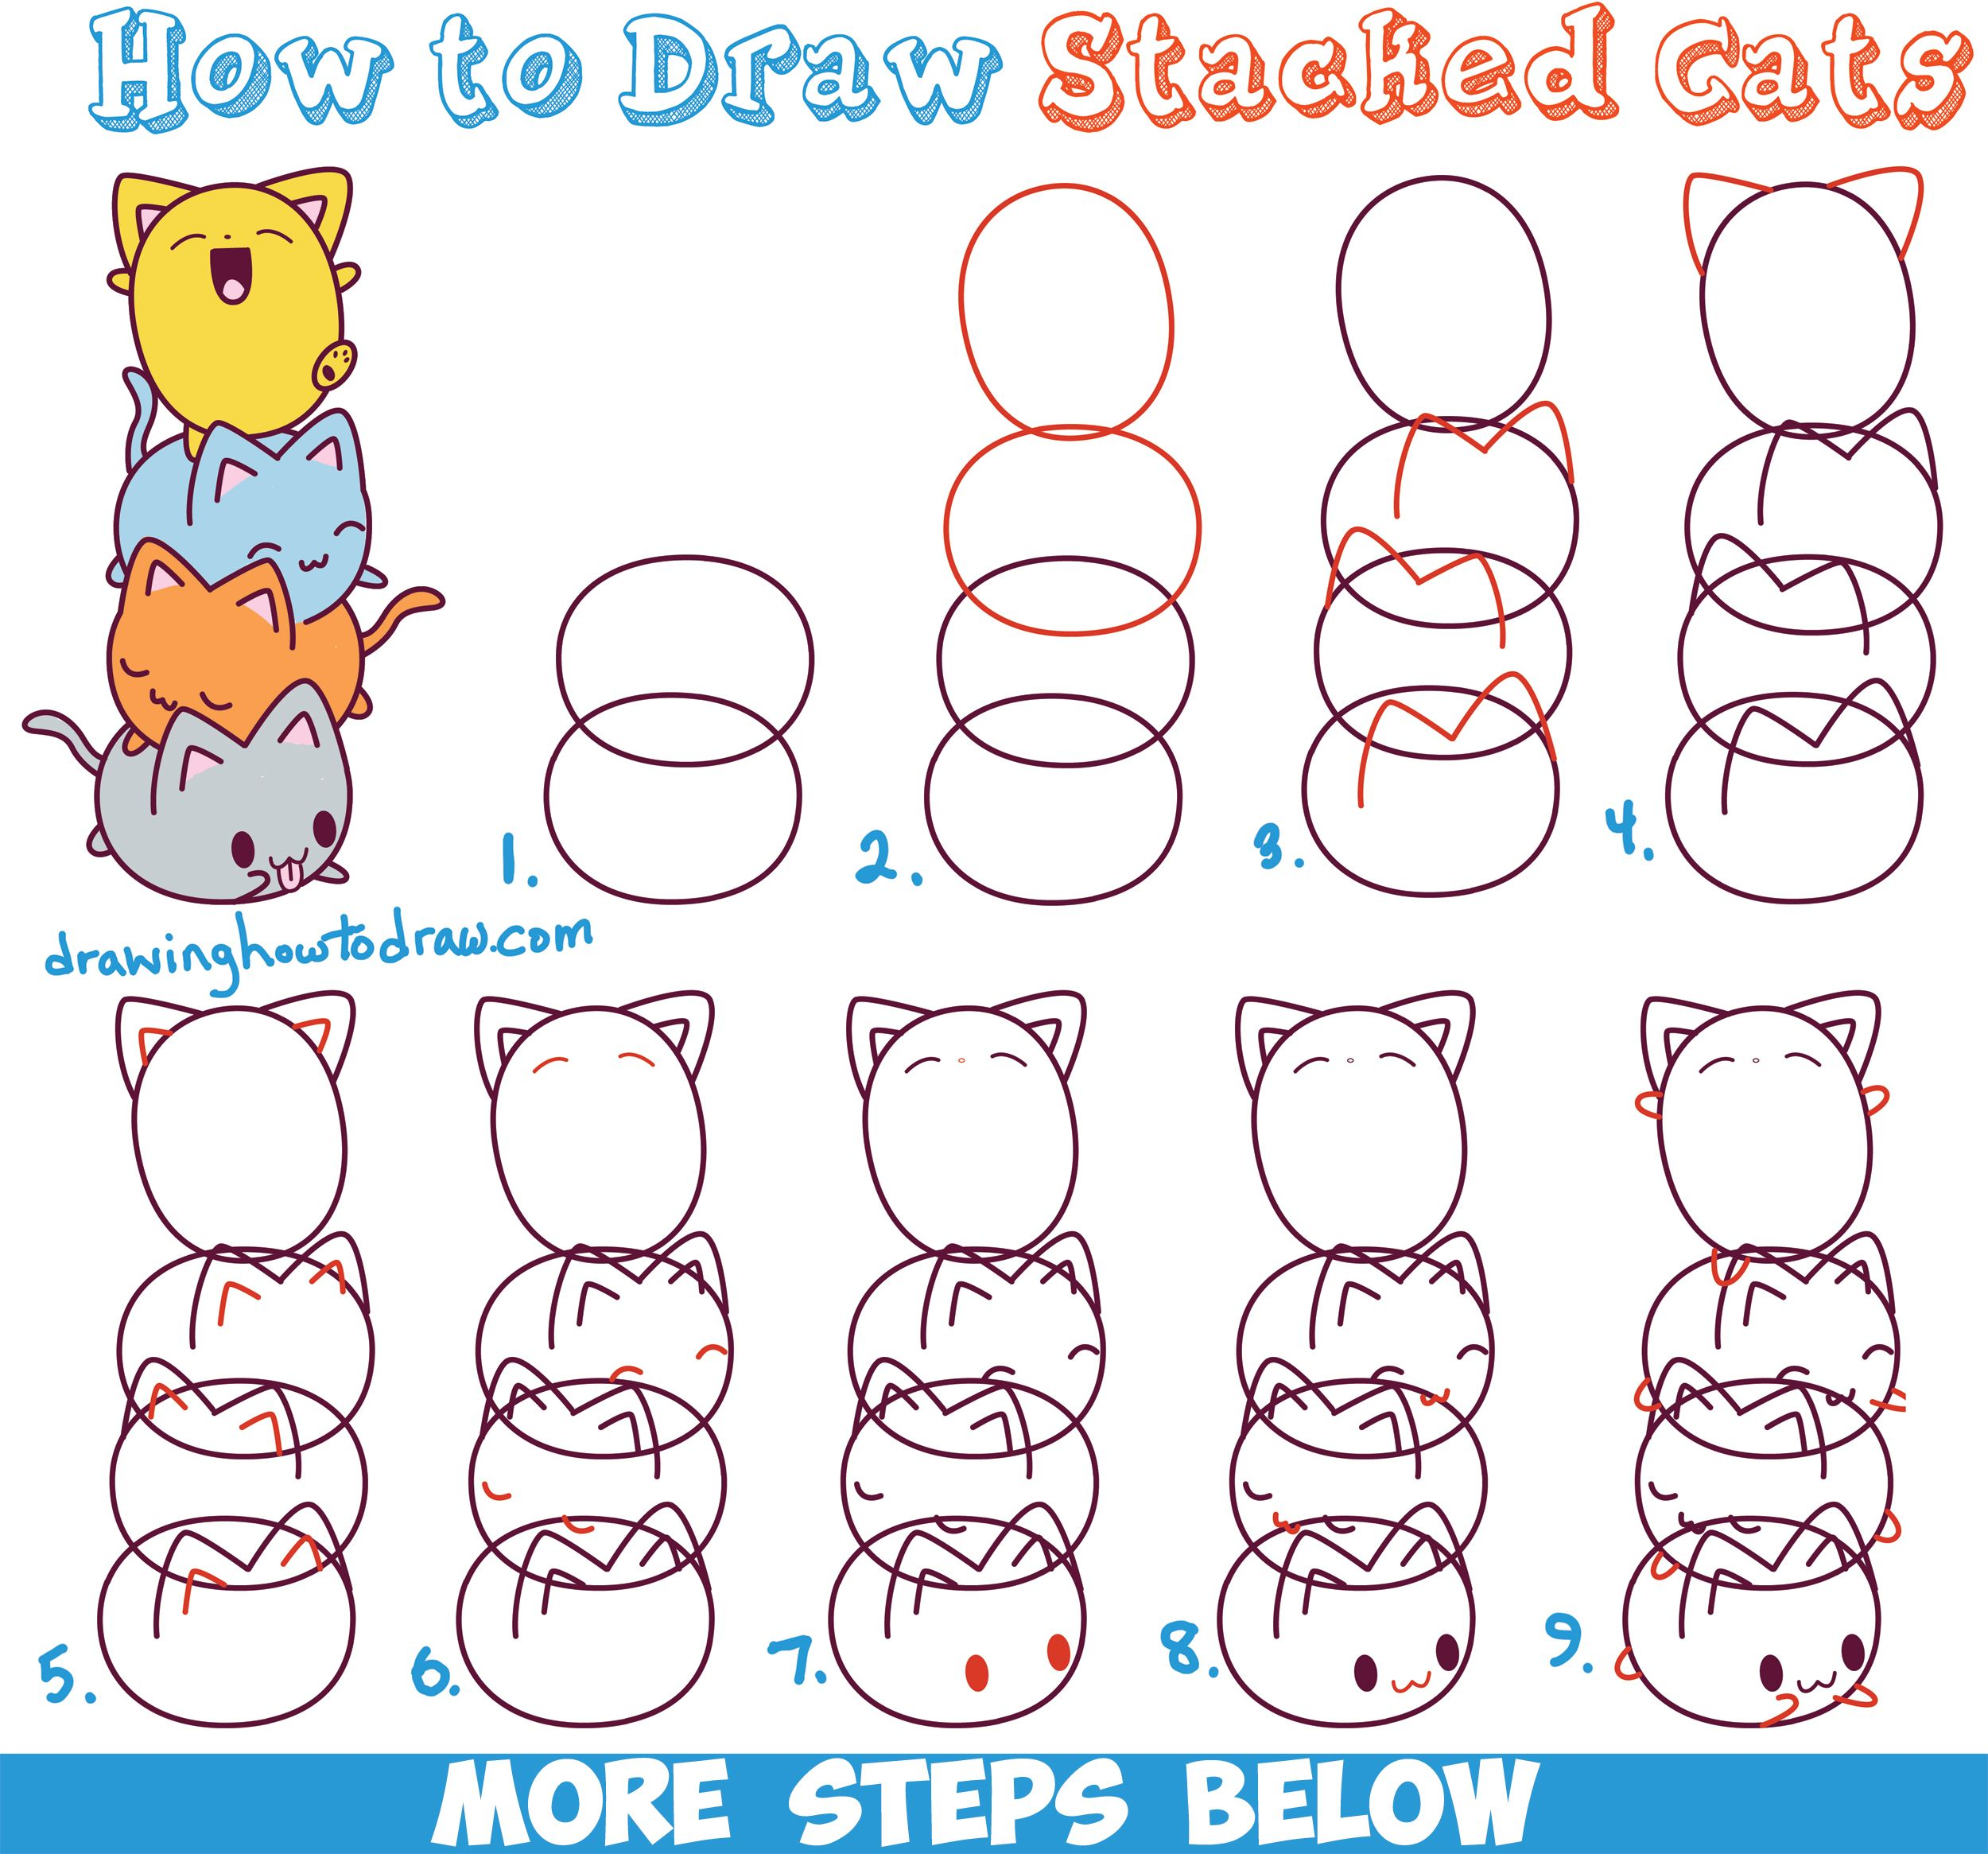 How To Draw Cute Kawaii Cats Stacked On Top Of Each Other Easy Step By Step Drawing Tutorial For Kids How To Draw Step By Step Drawing Tutorials Cat